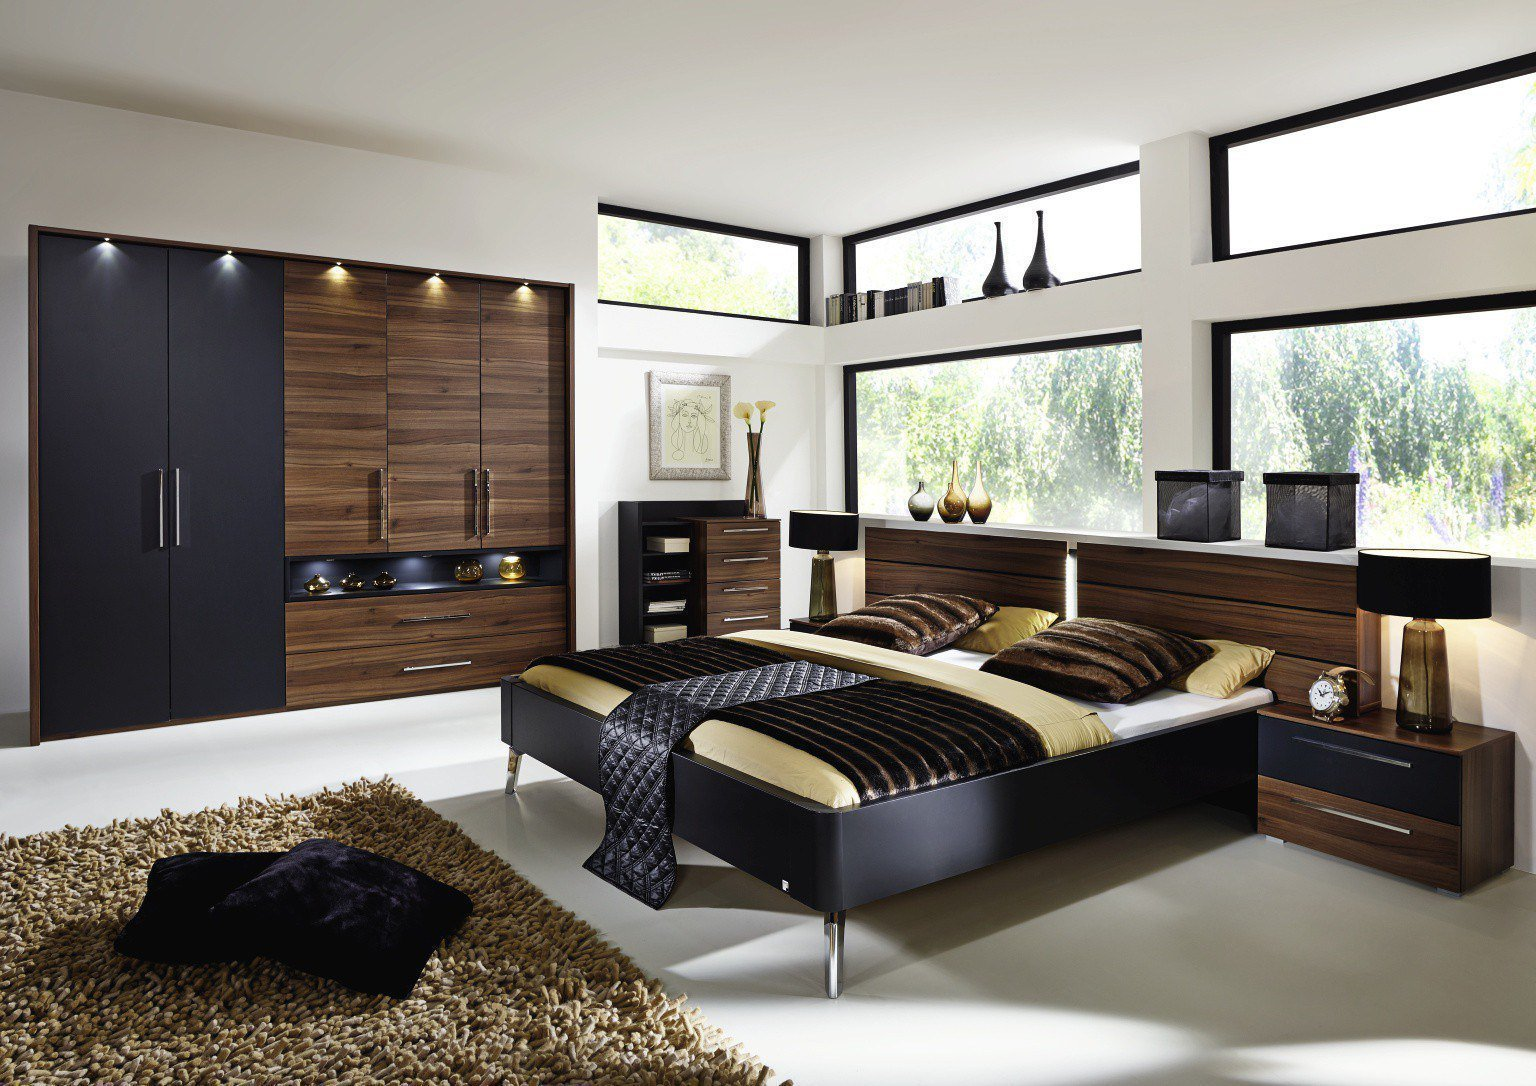 rauch manila schlafzimmer m bel nussbaum m bel letz ihr online shop. Black Bedroom Furniture Sets. Home Design Ideas